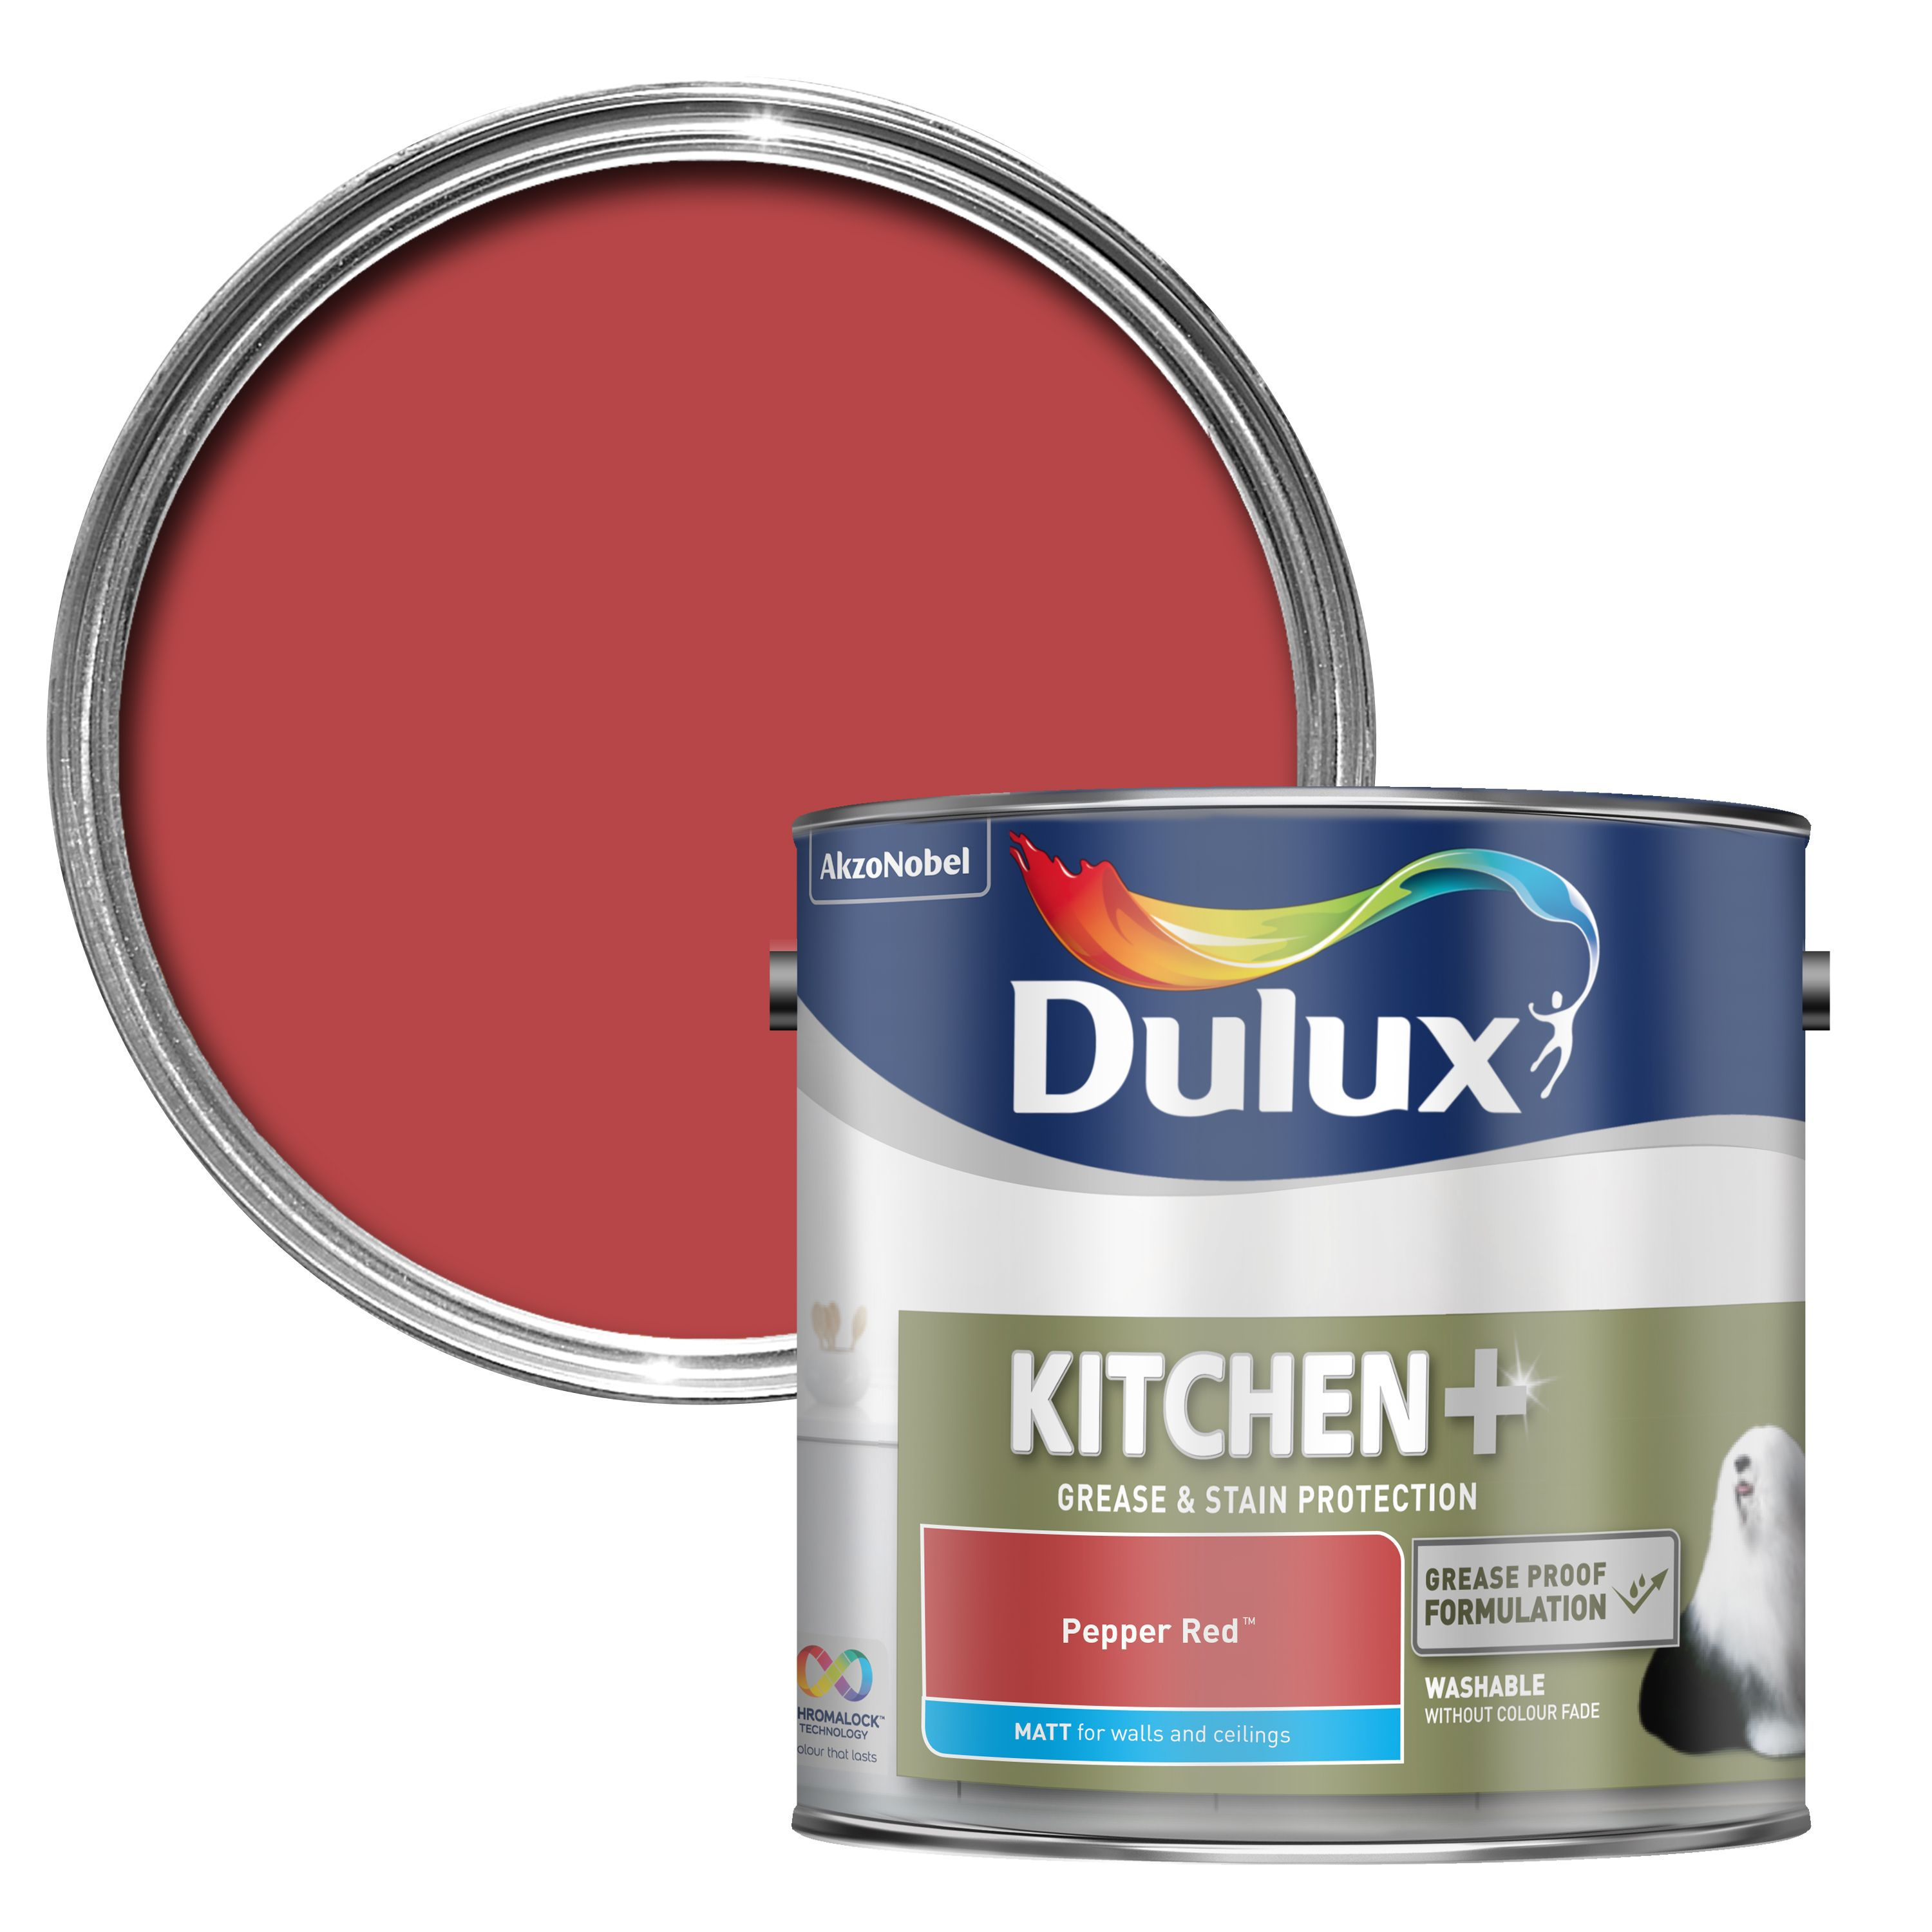 dulux kitchen pepper red matt emulsion paint 2500ml. Black Bedroom Furniture Sets. Home Design Ideas